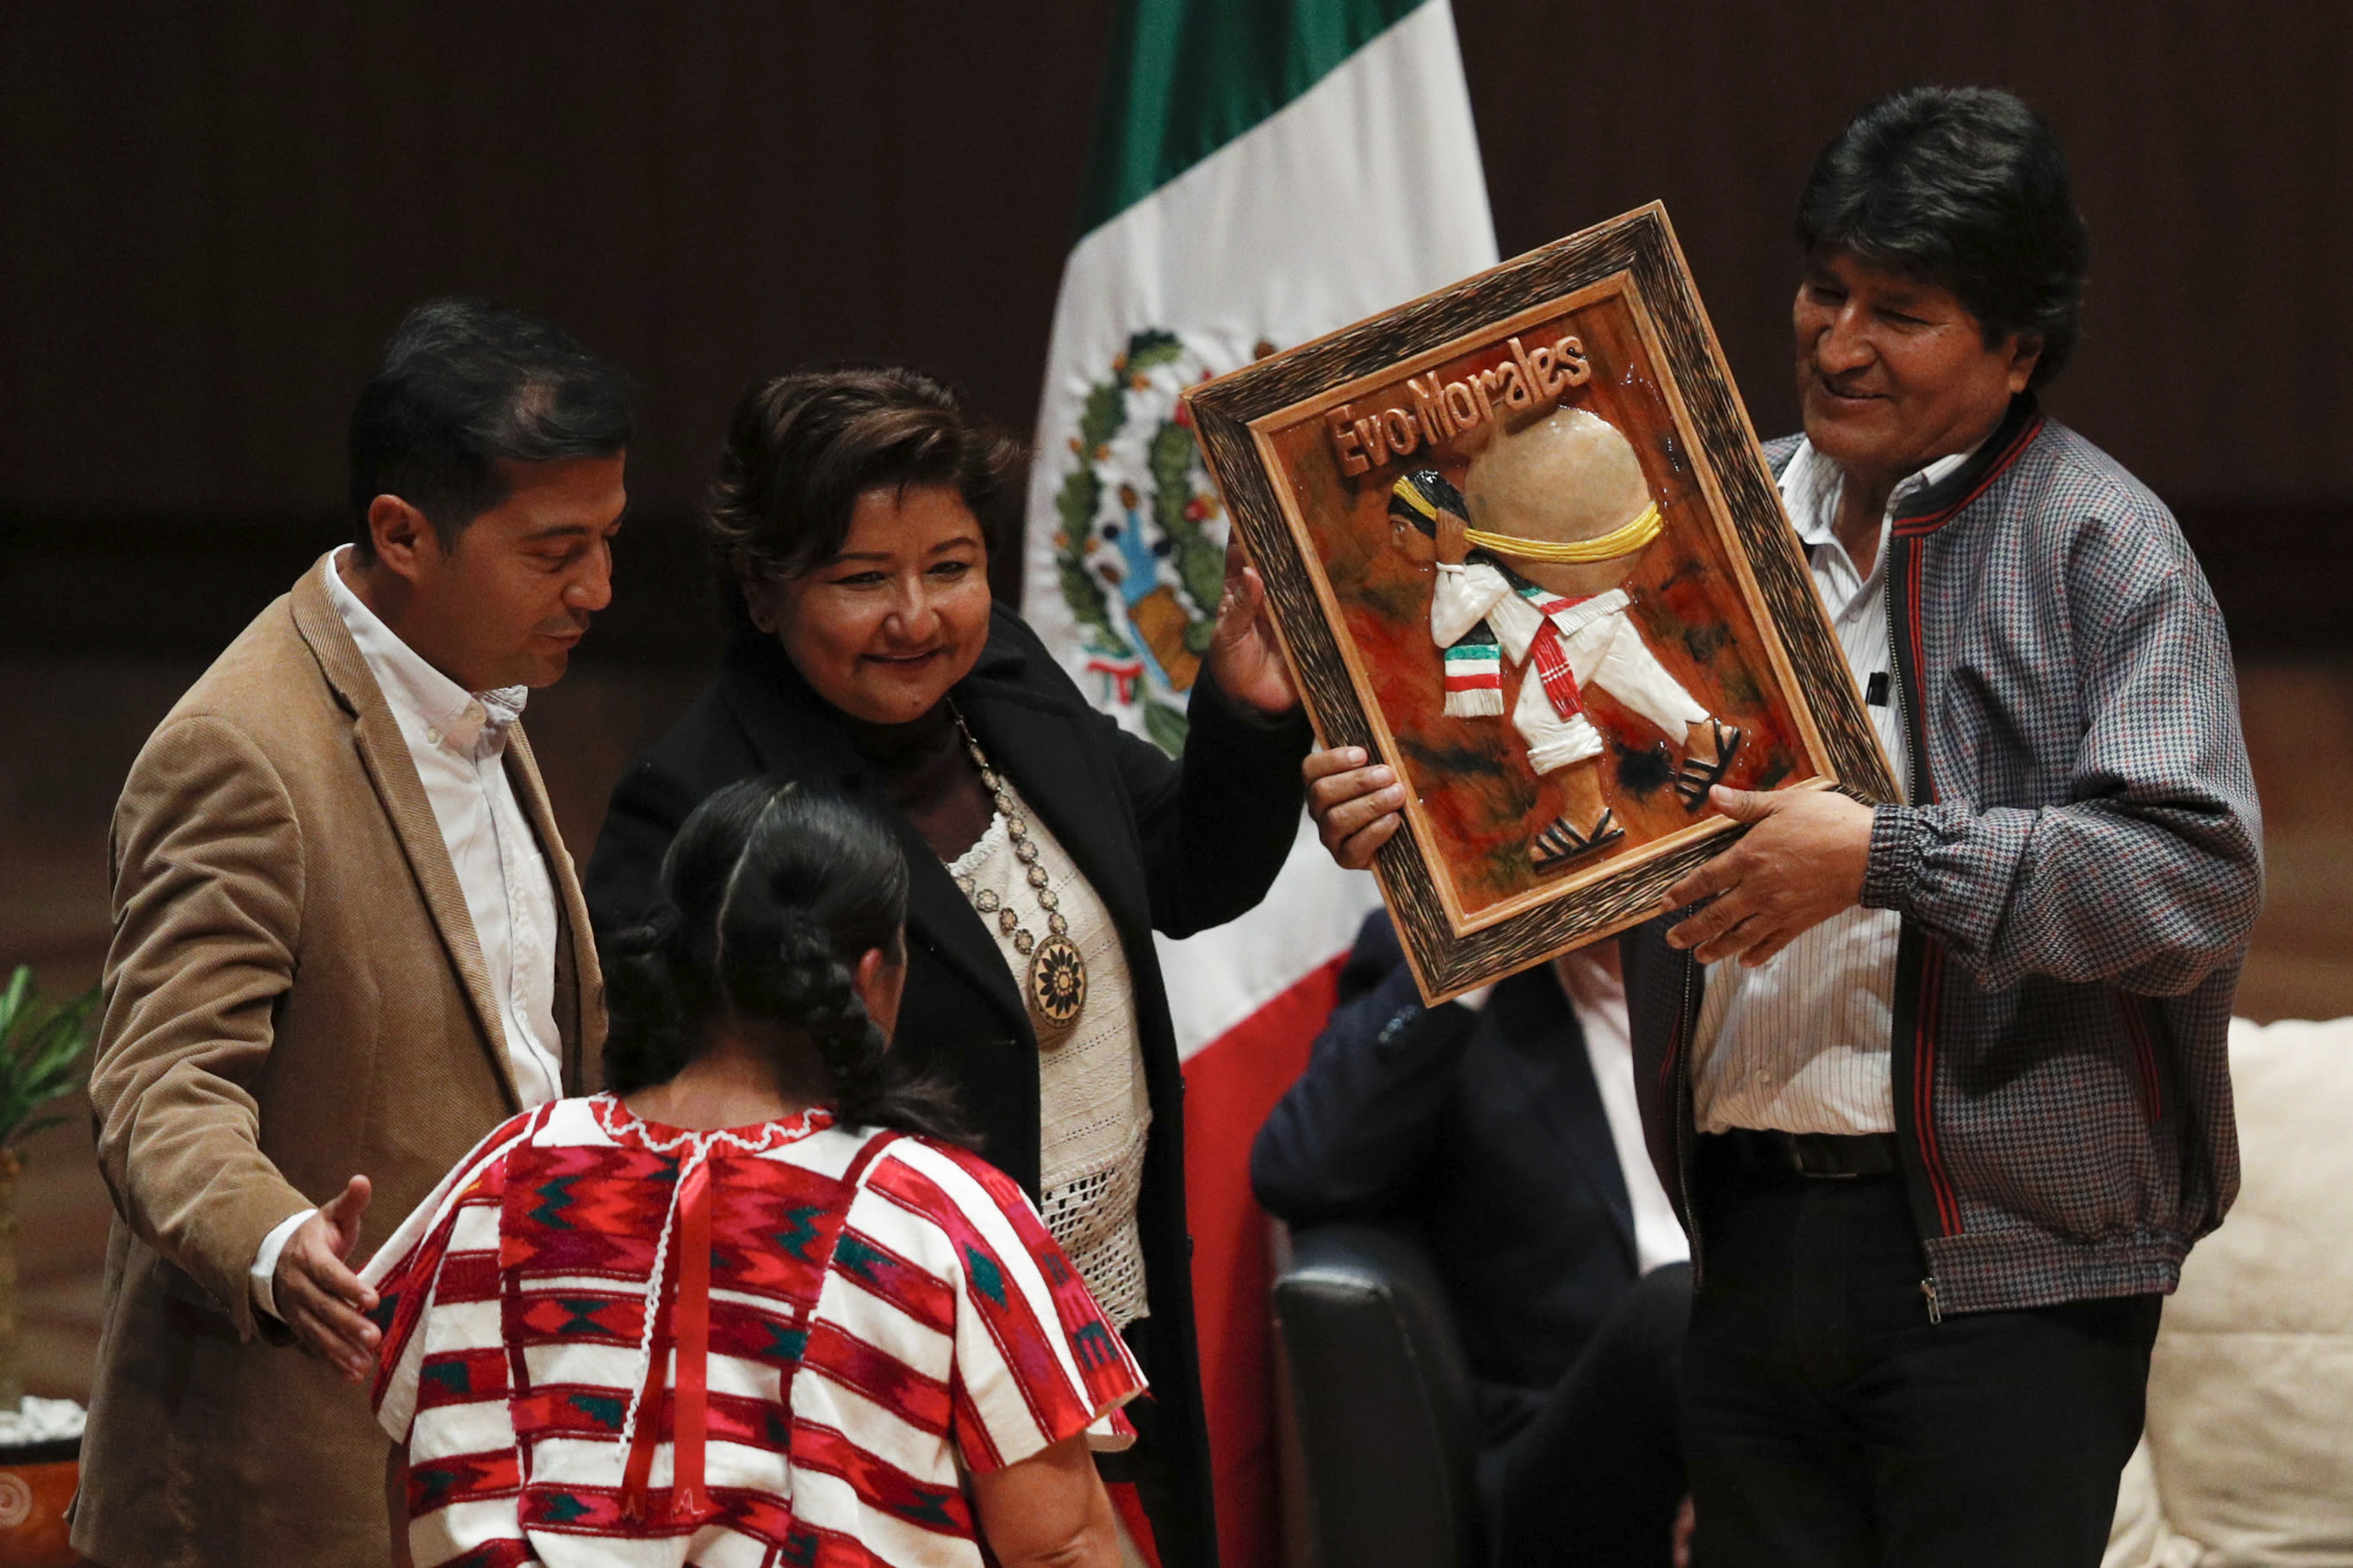 Members of an indigenous community present Bolivia's former President Evo Morales, right, with an artwork during a dialog with students and indigenous communities, at Ollin Yoliztli Cultural Center in Mexico City, Tuesday, Nov. 26, 2019. Bolivia is struggling to stabilize after weeks of anti-government protests and violence in which at least 30 people have been killed. Former president Evo Morales resigned on Nov. 10 after an election that the opposition said was rigged. (AP Photo/Rebecca Blackwell)